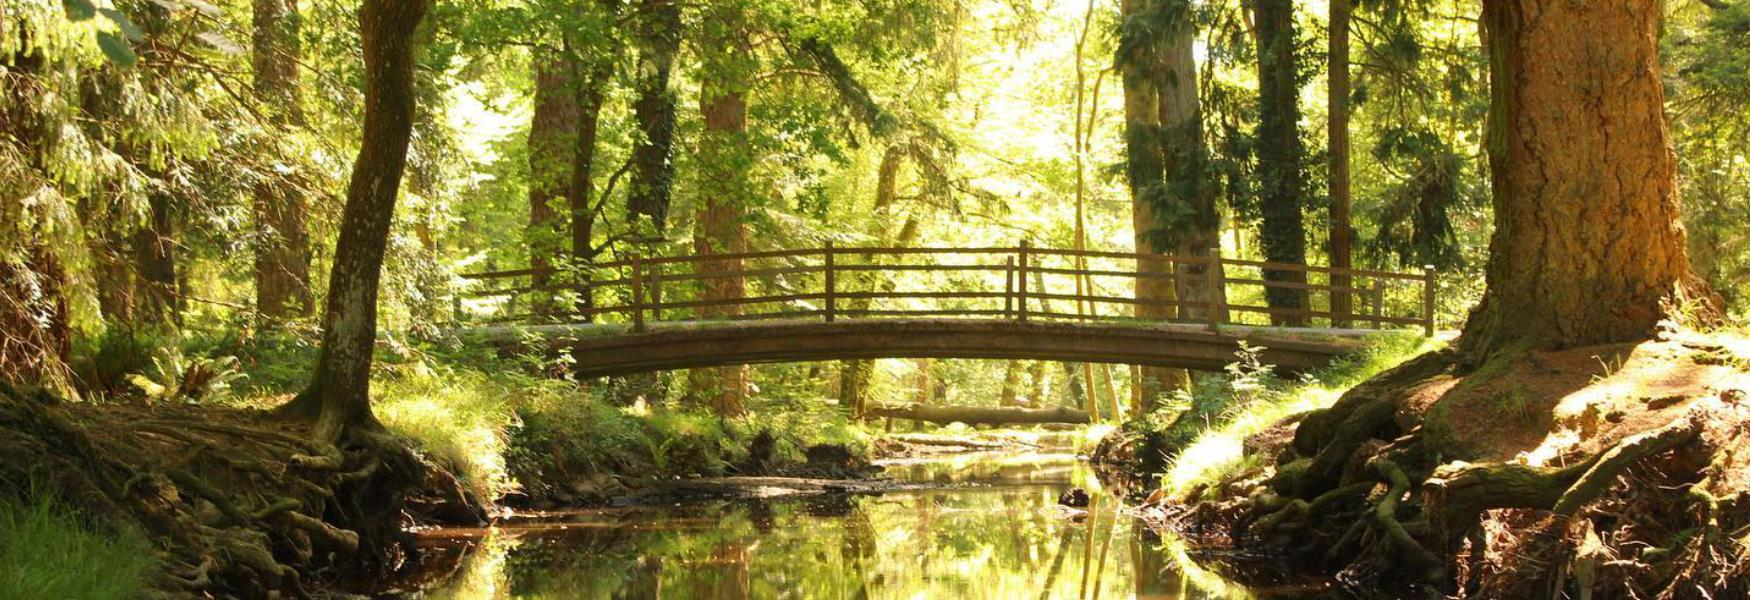 Bridge at Ornamental Drive with bright green trees in the New Forest